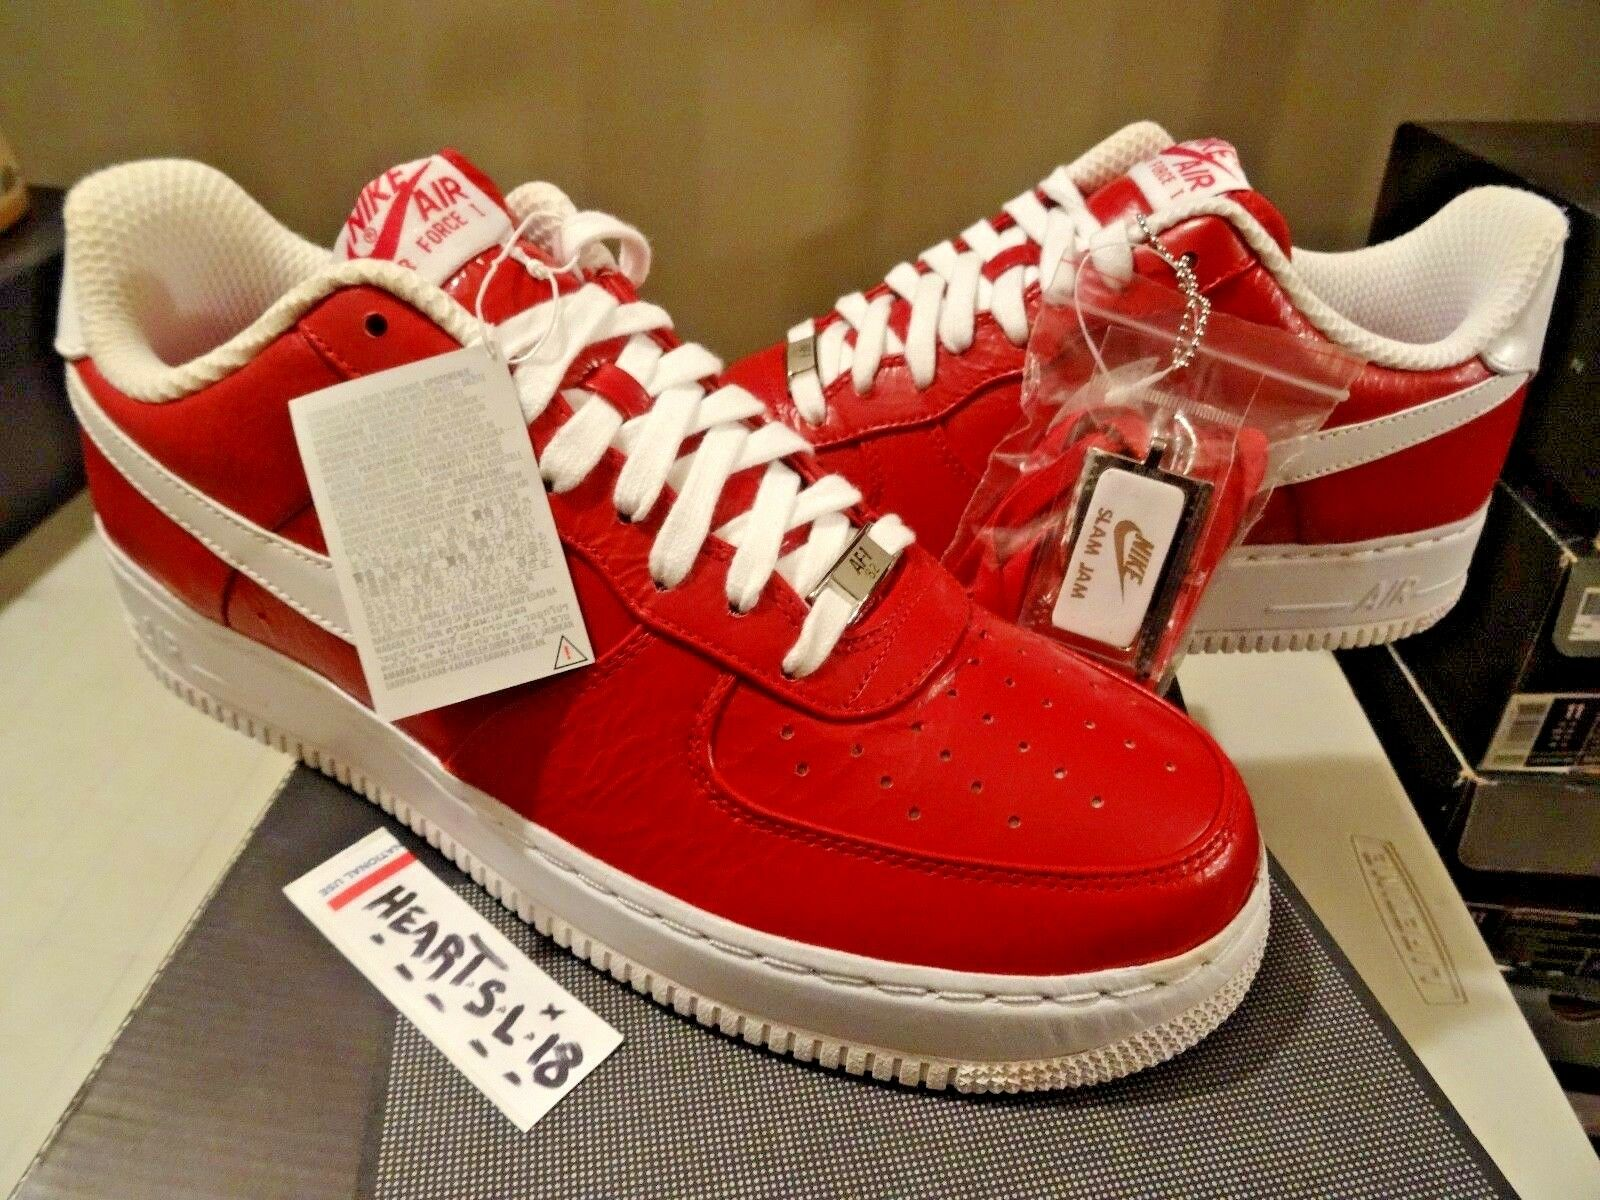 DS 2008 Nike Air Force 1 AF1 Low Supreme Slam Jam RED 318931-611 SZ 11 DUNK KAWS